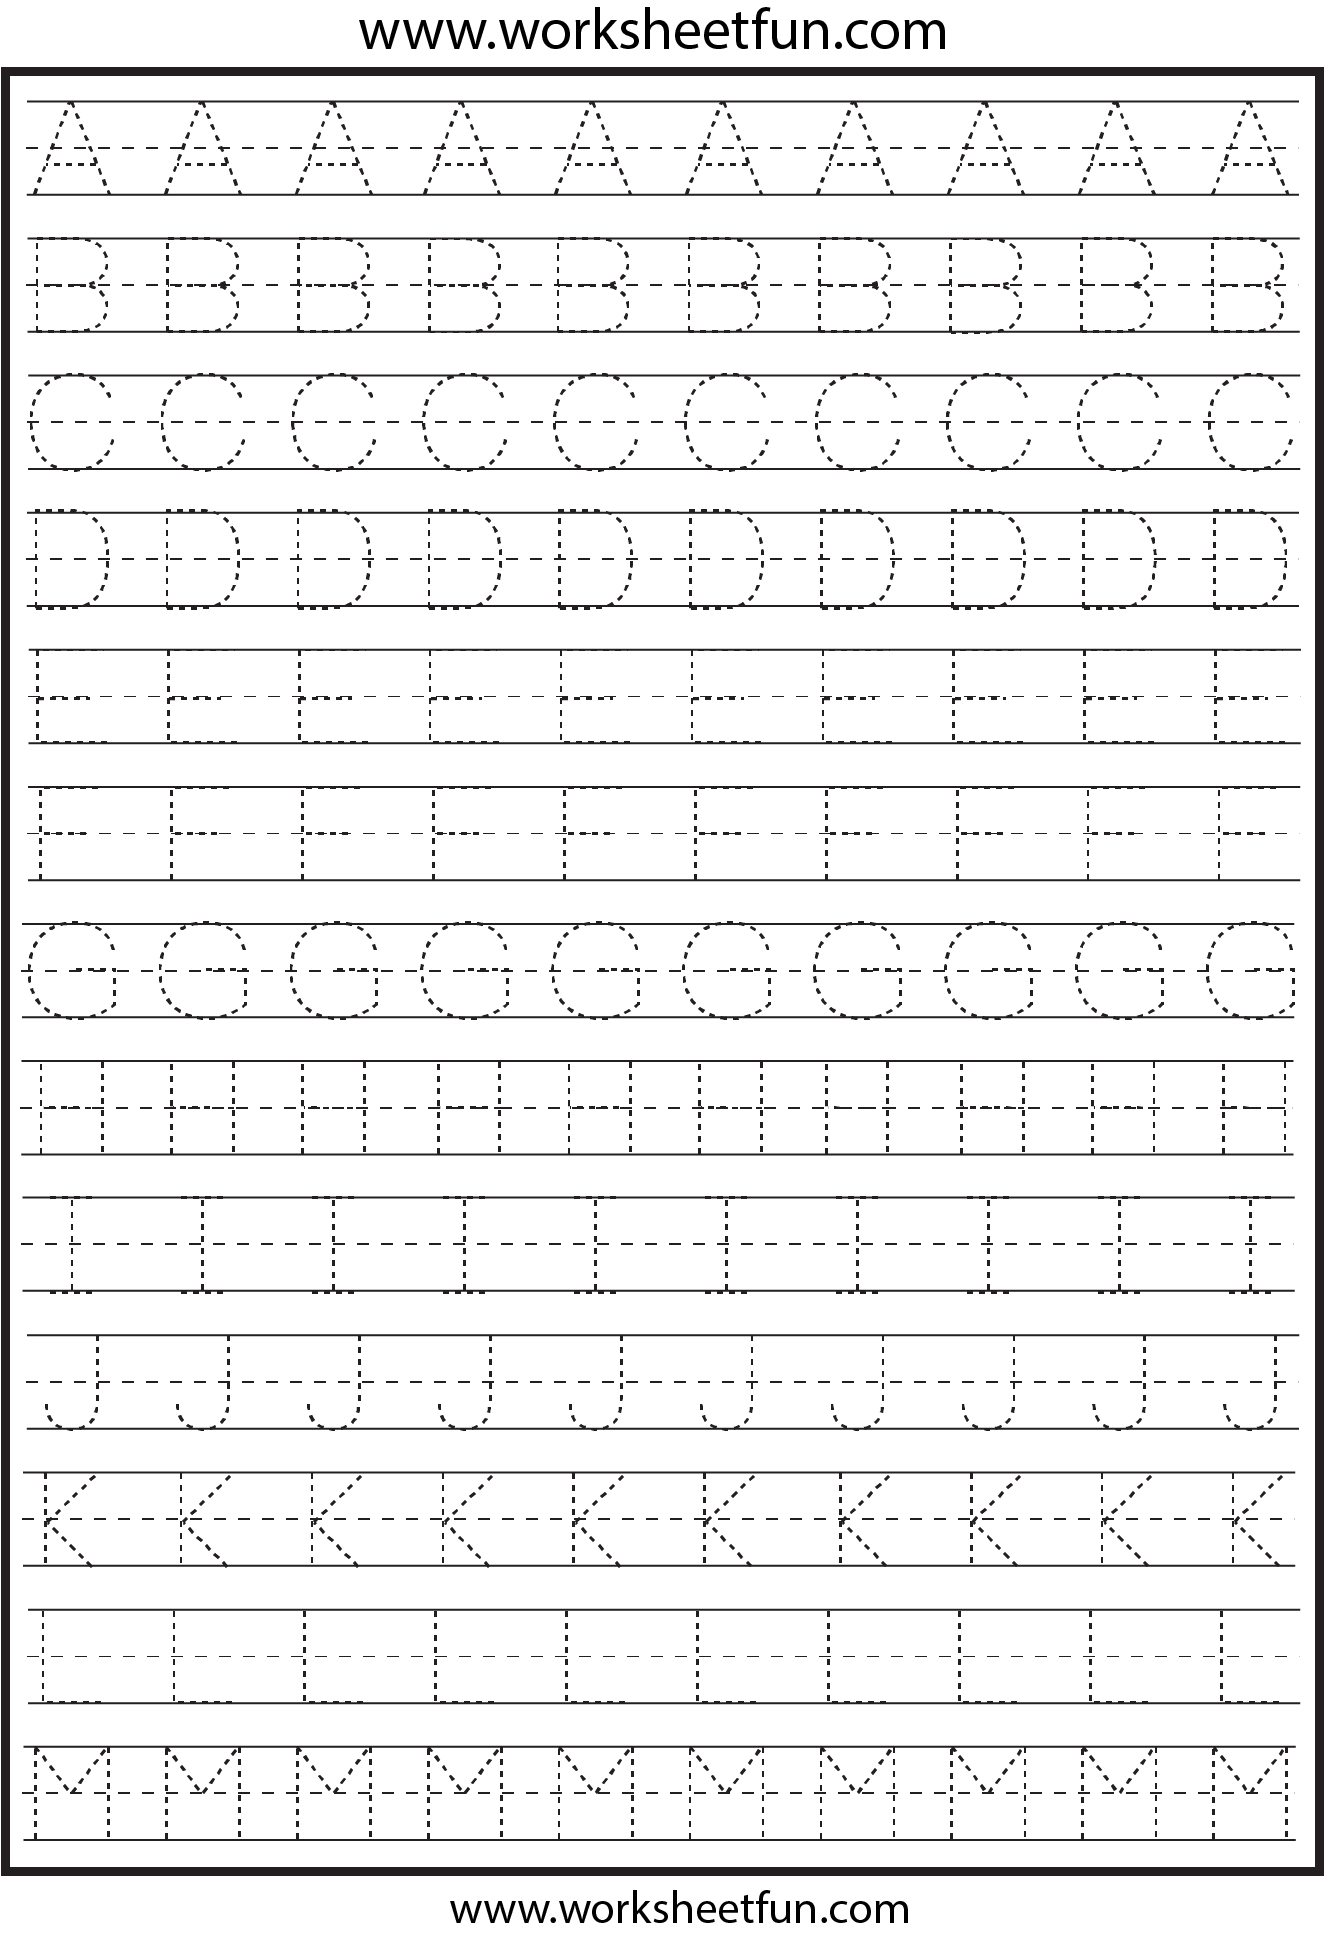 Worksheets Pre K Alphabet Tracing Worksheets letter tracing i need a ton of these printed lol school stuff worksheets for kindergarten capital letters alphabet 26 free pri